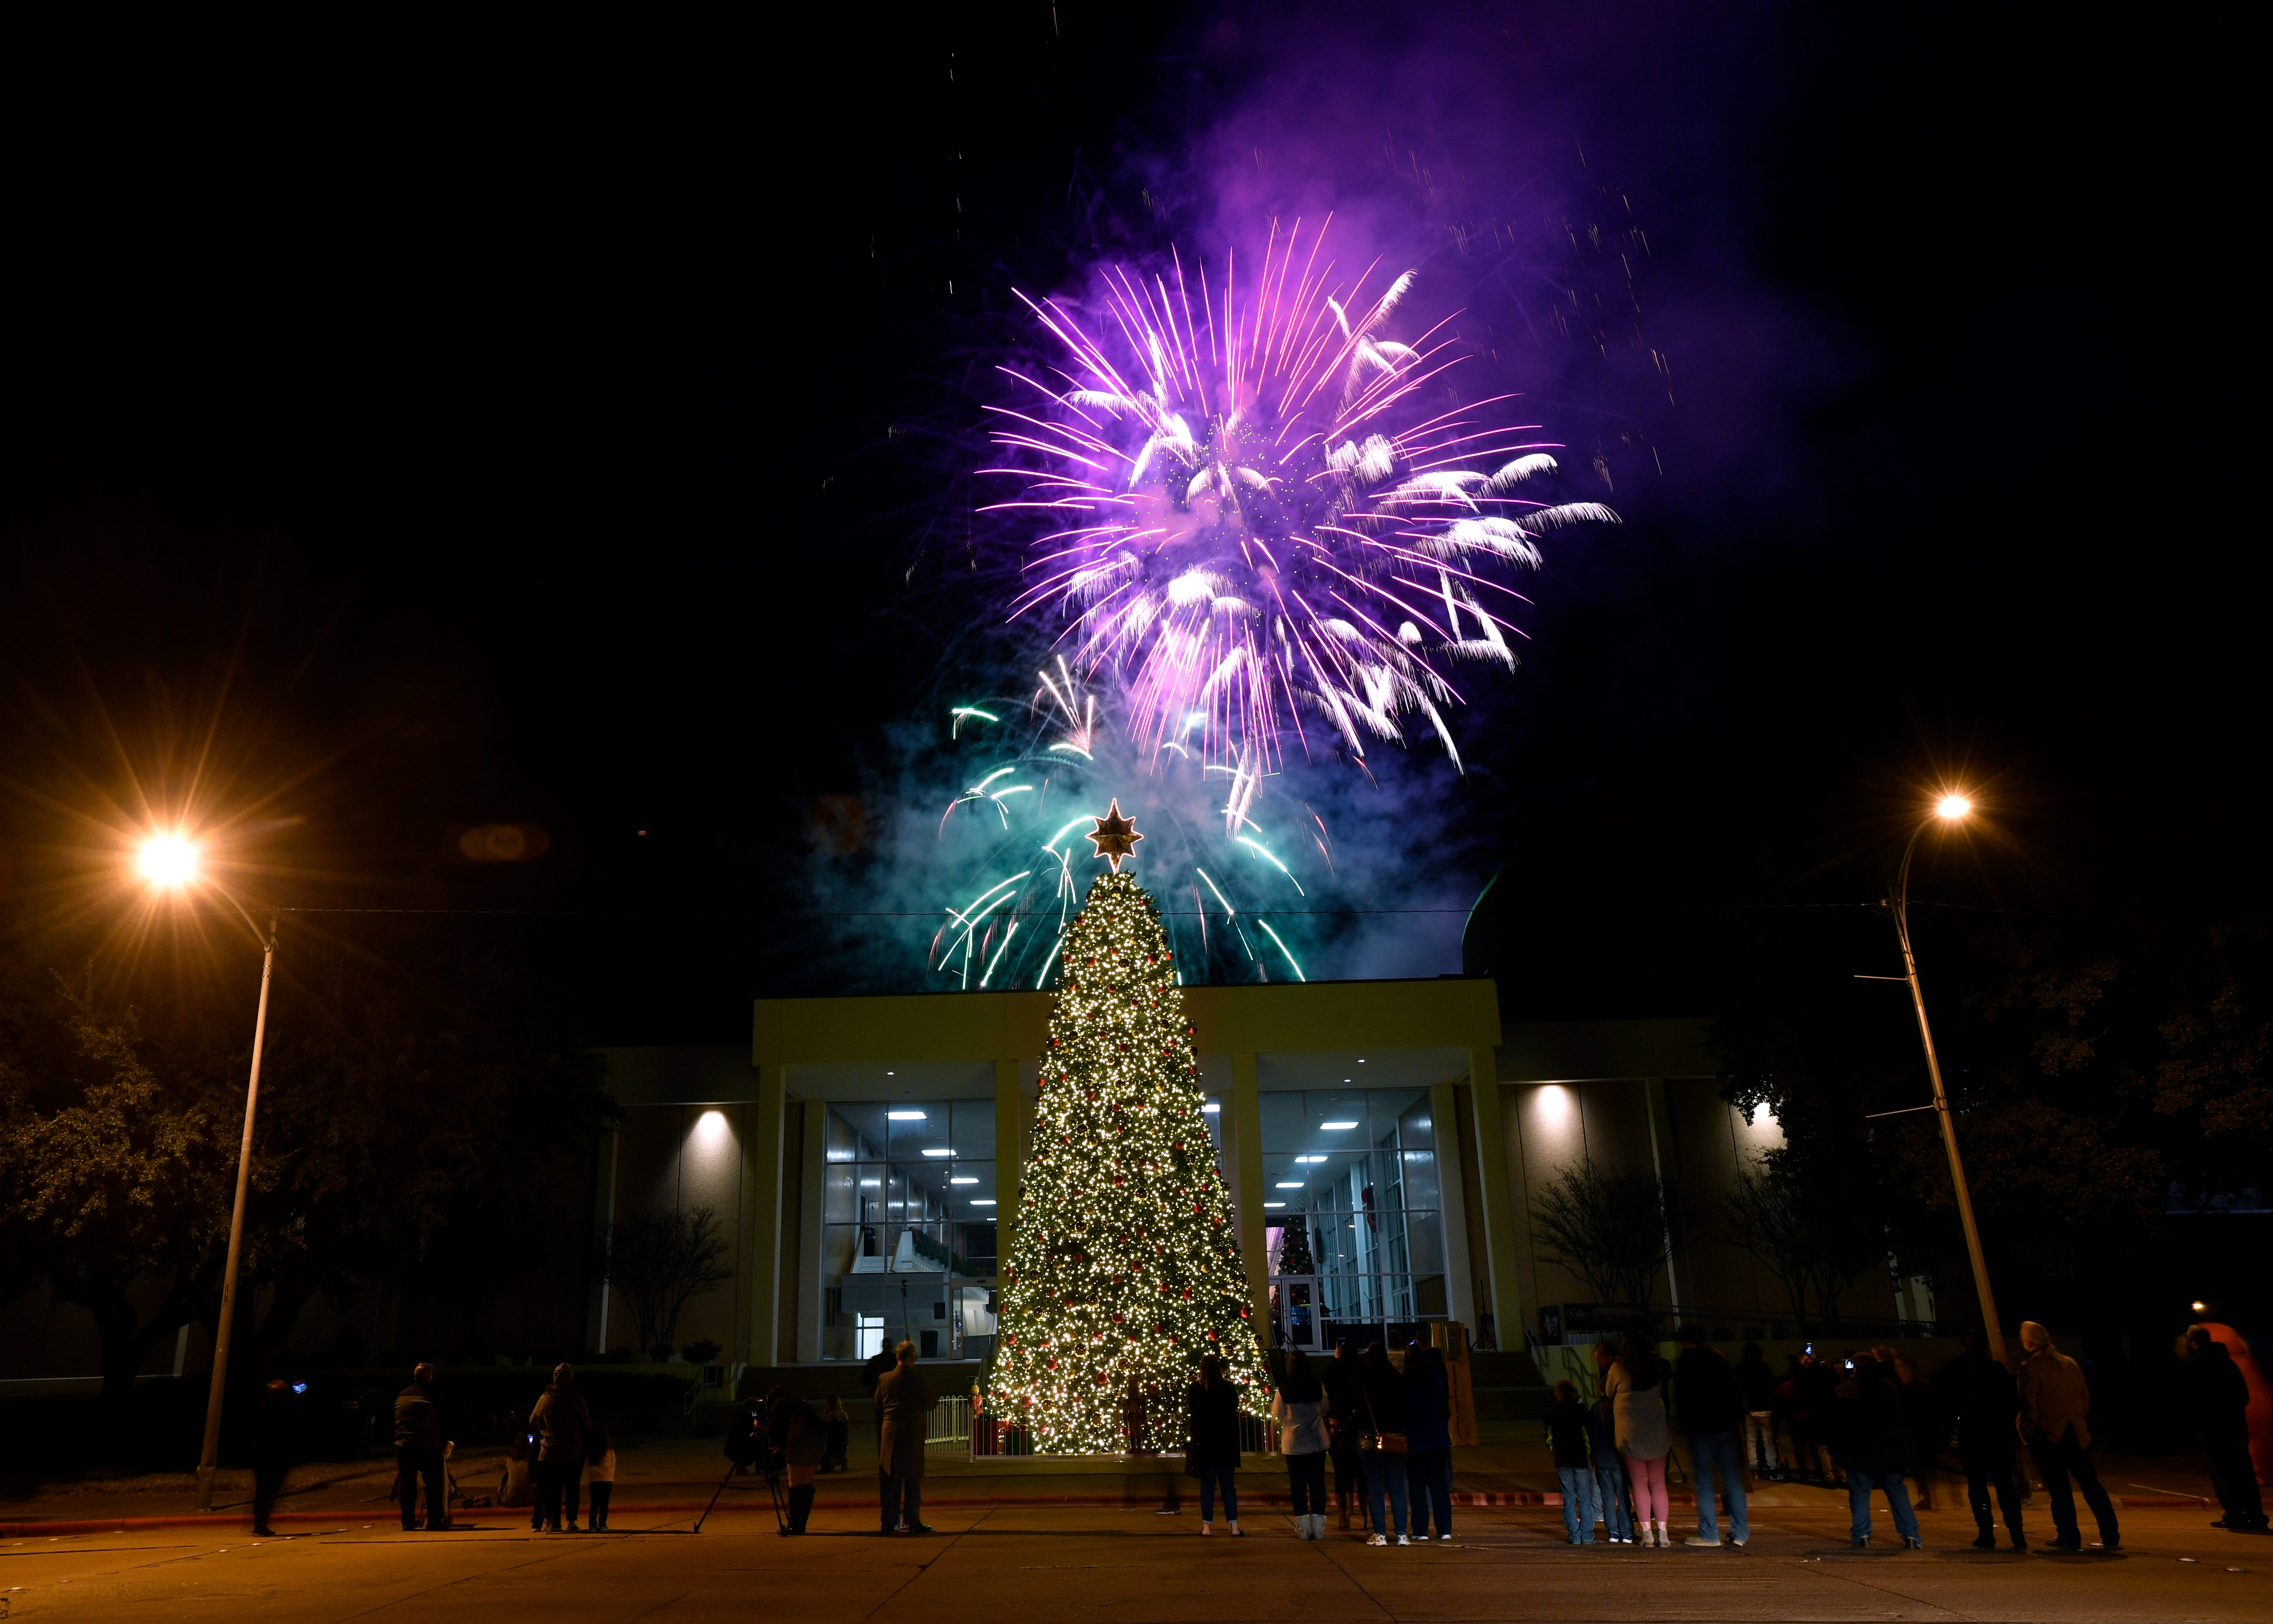 Fireworks explode in the sky behind the Abilene Convention Center Monday Nov. 26, 2018 after the lighting of the city's Christmas tree.